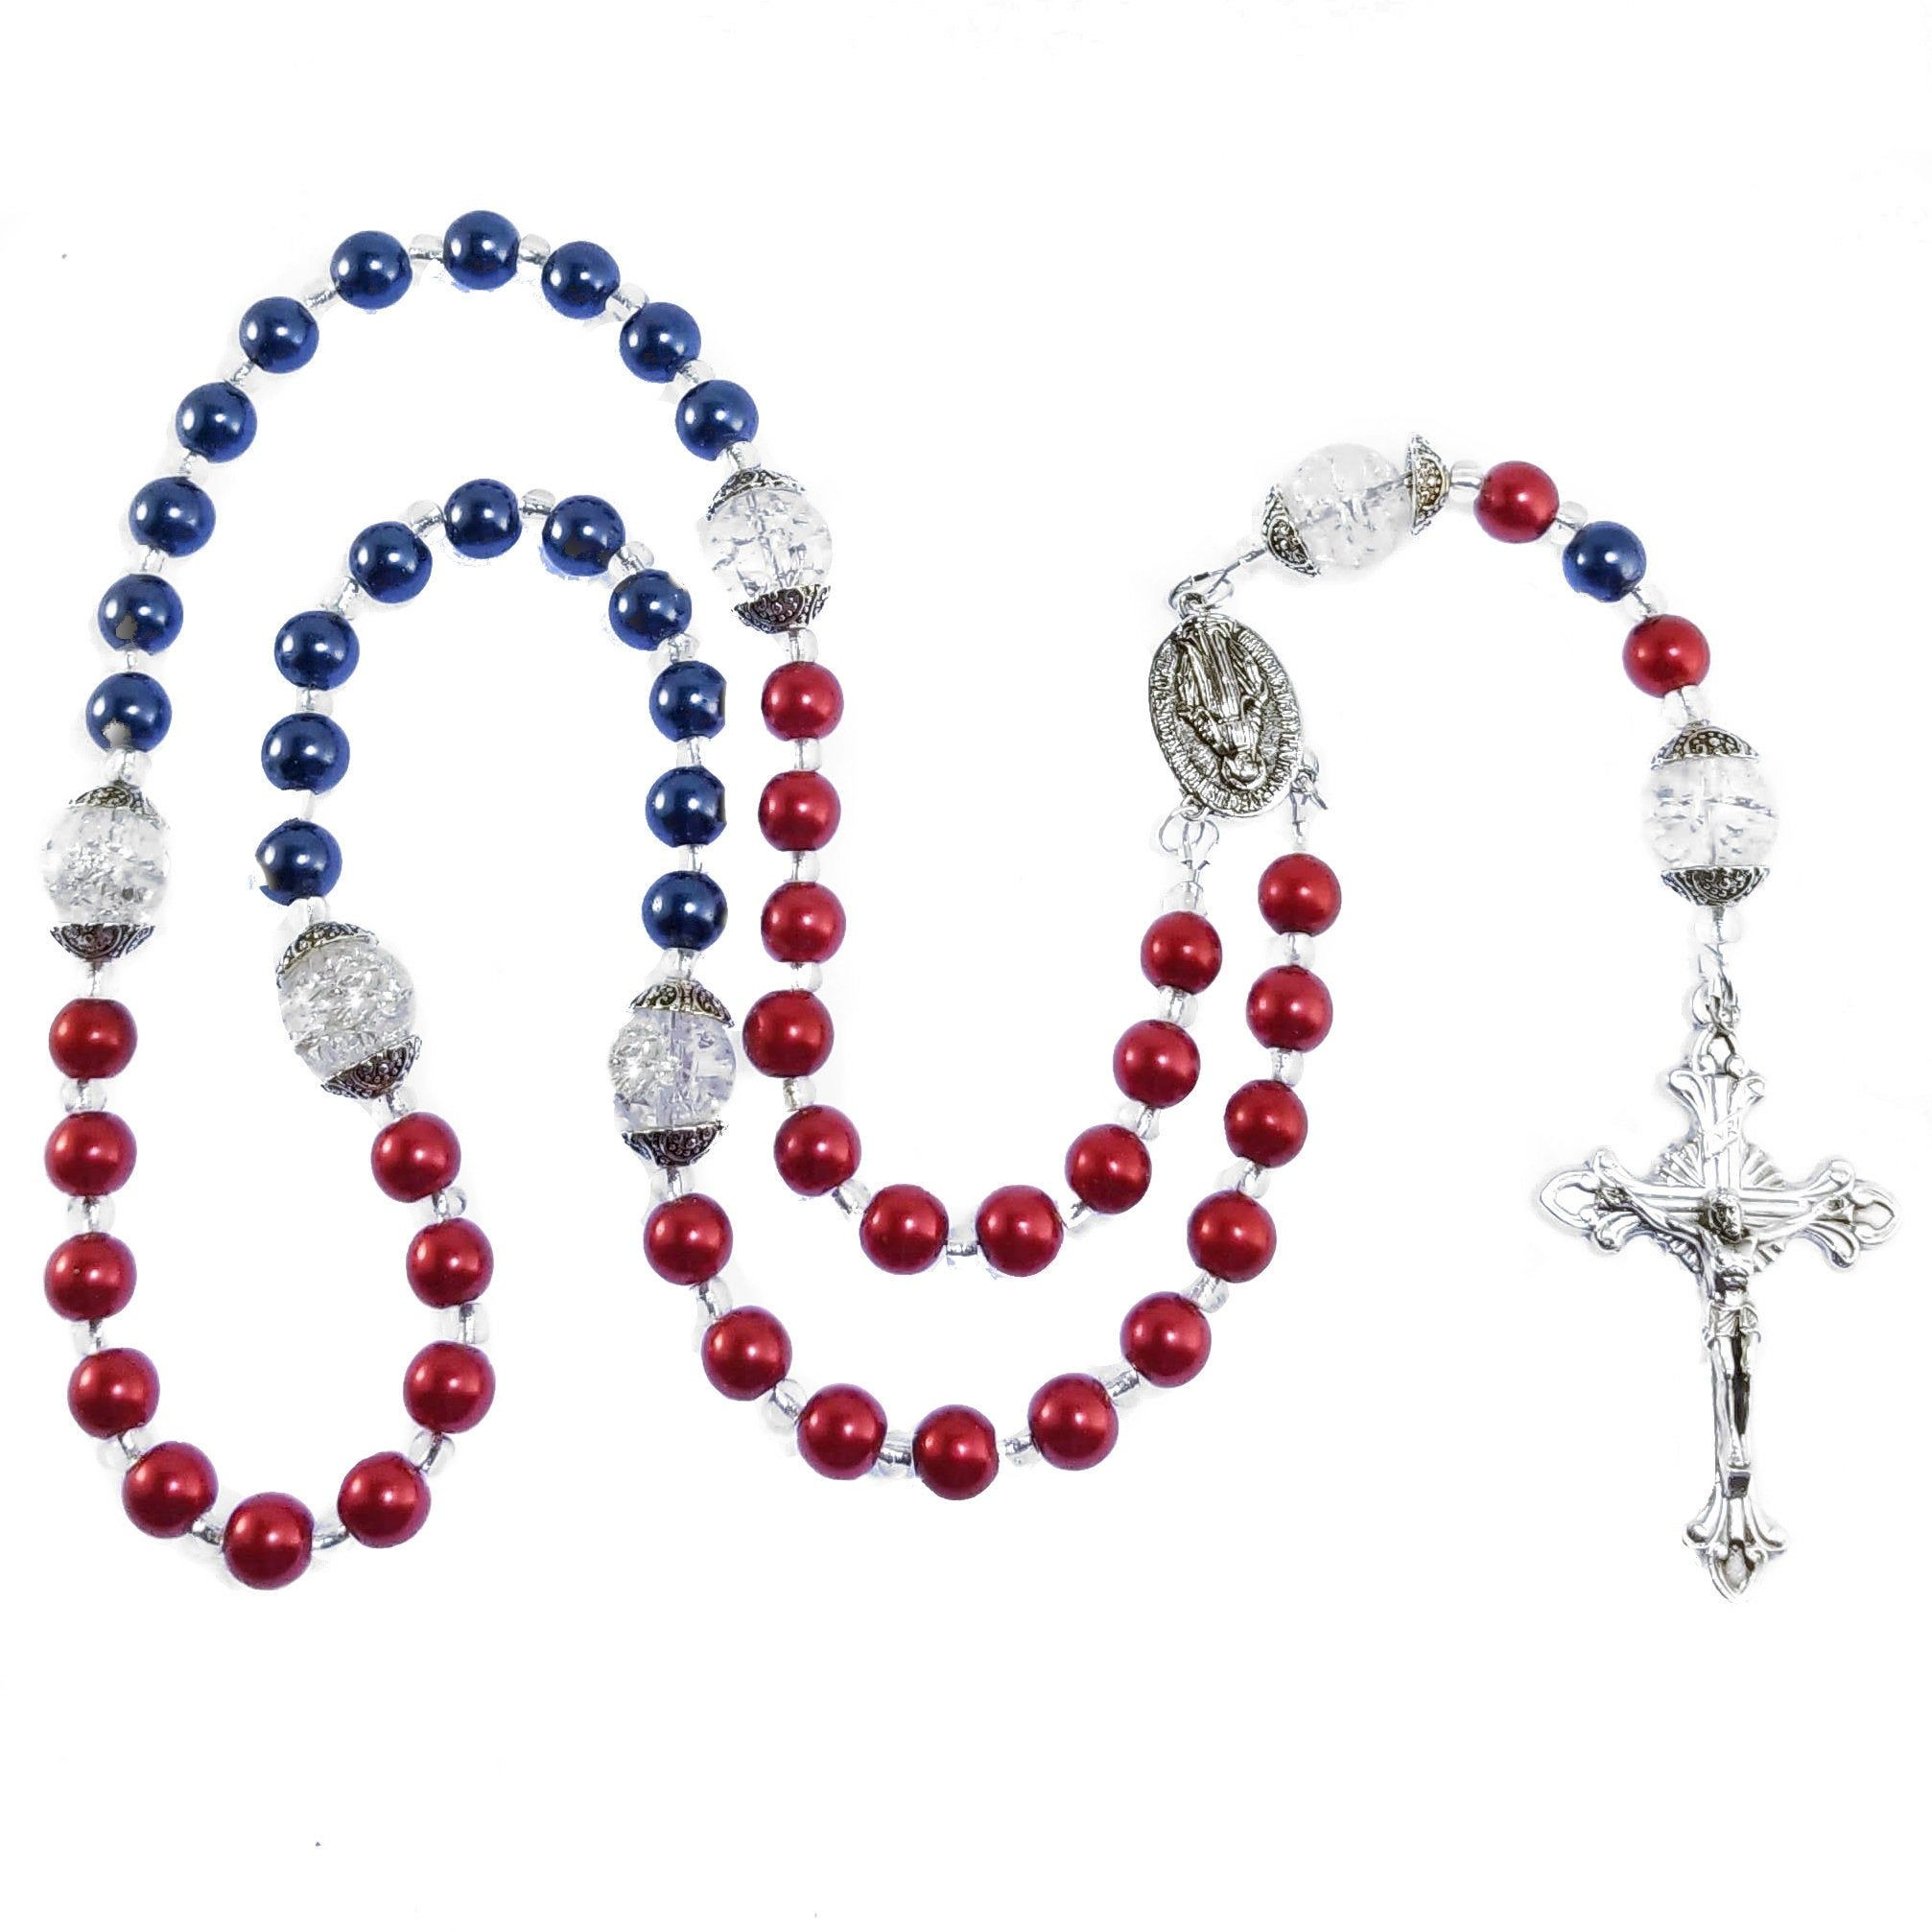 Pin by Tammy Barziza on Rosaries   Blue rosary, Silver crucifix ...